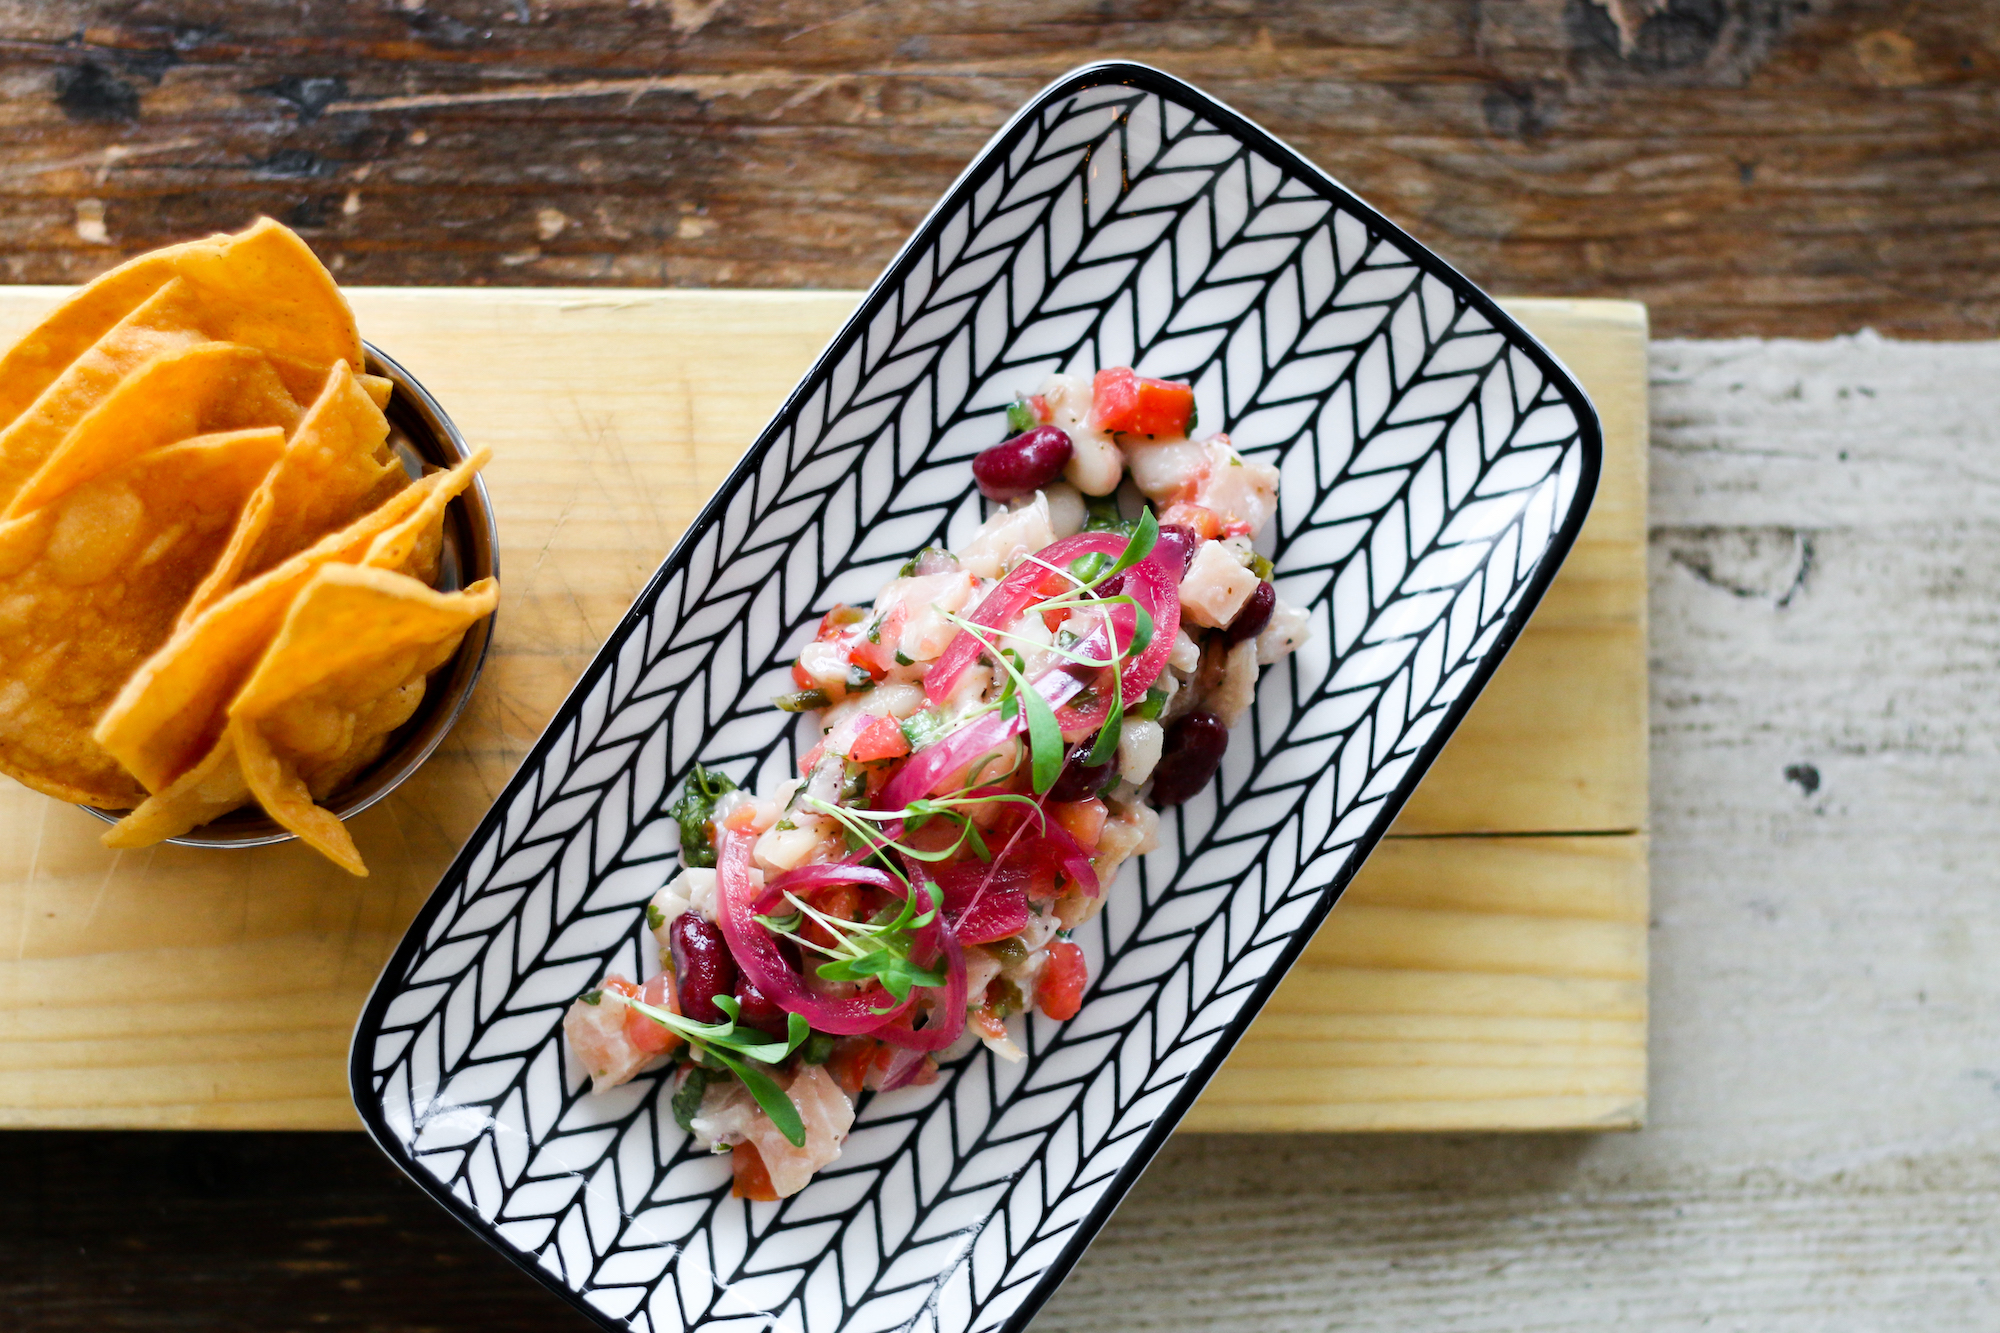 TACOFINO HASTINGS TEAMS UP WITH VANCOUVER CRAFT BREWERIES TO HOST SERIES OF BEER DINNERS IN 2018